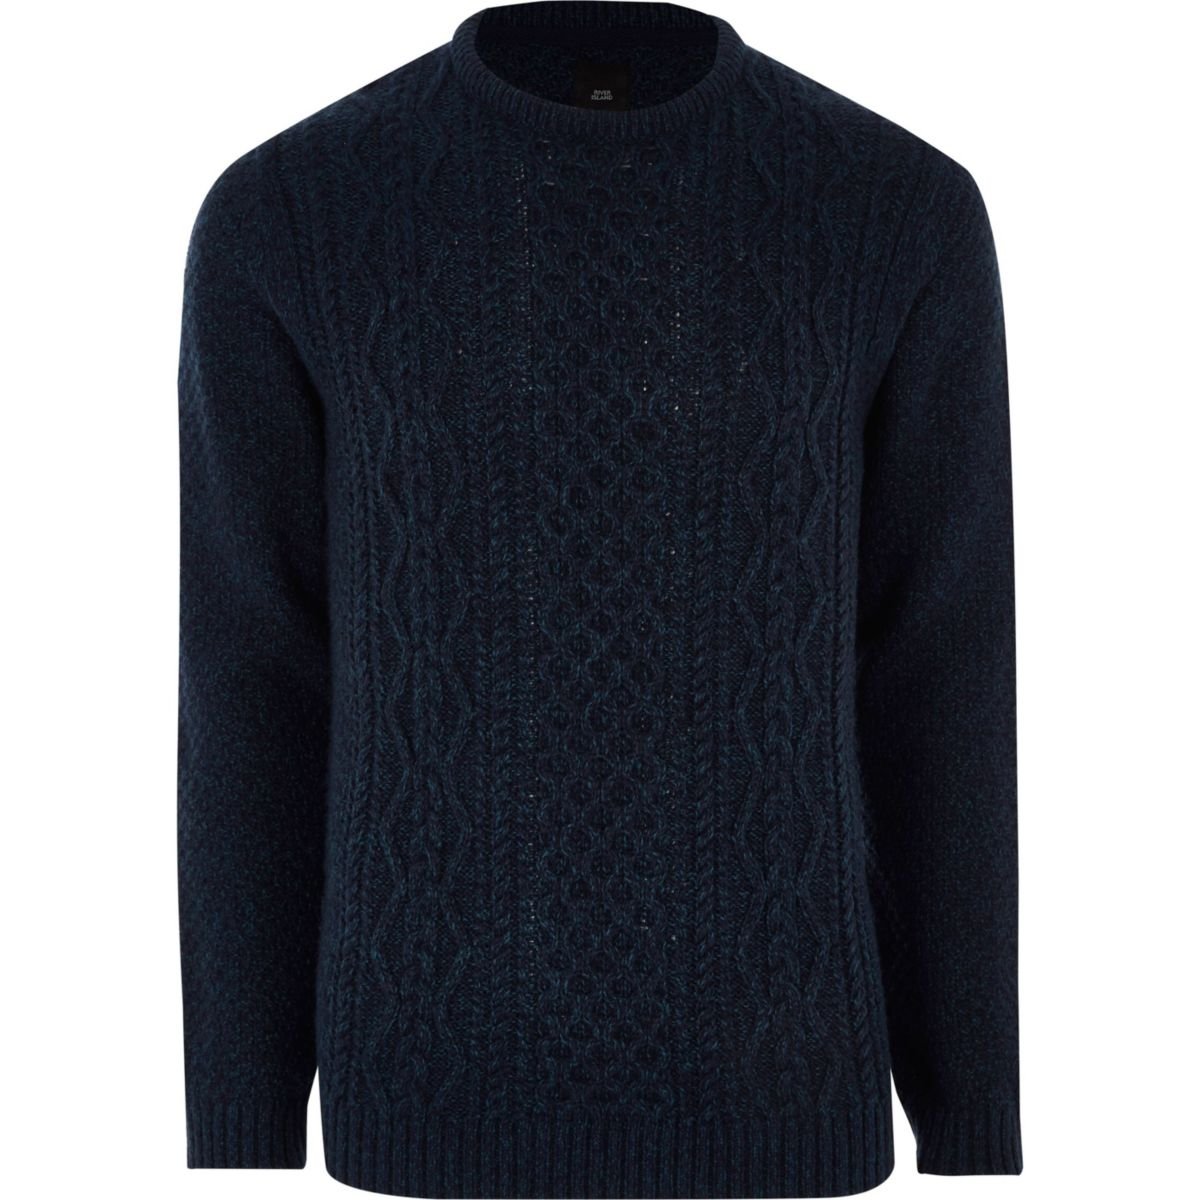 Navy cable knit sweater - Sweaters - Sweaters & Cardigans - men